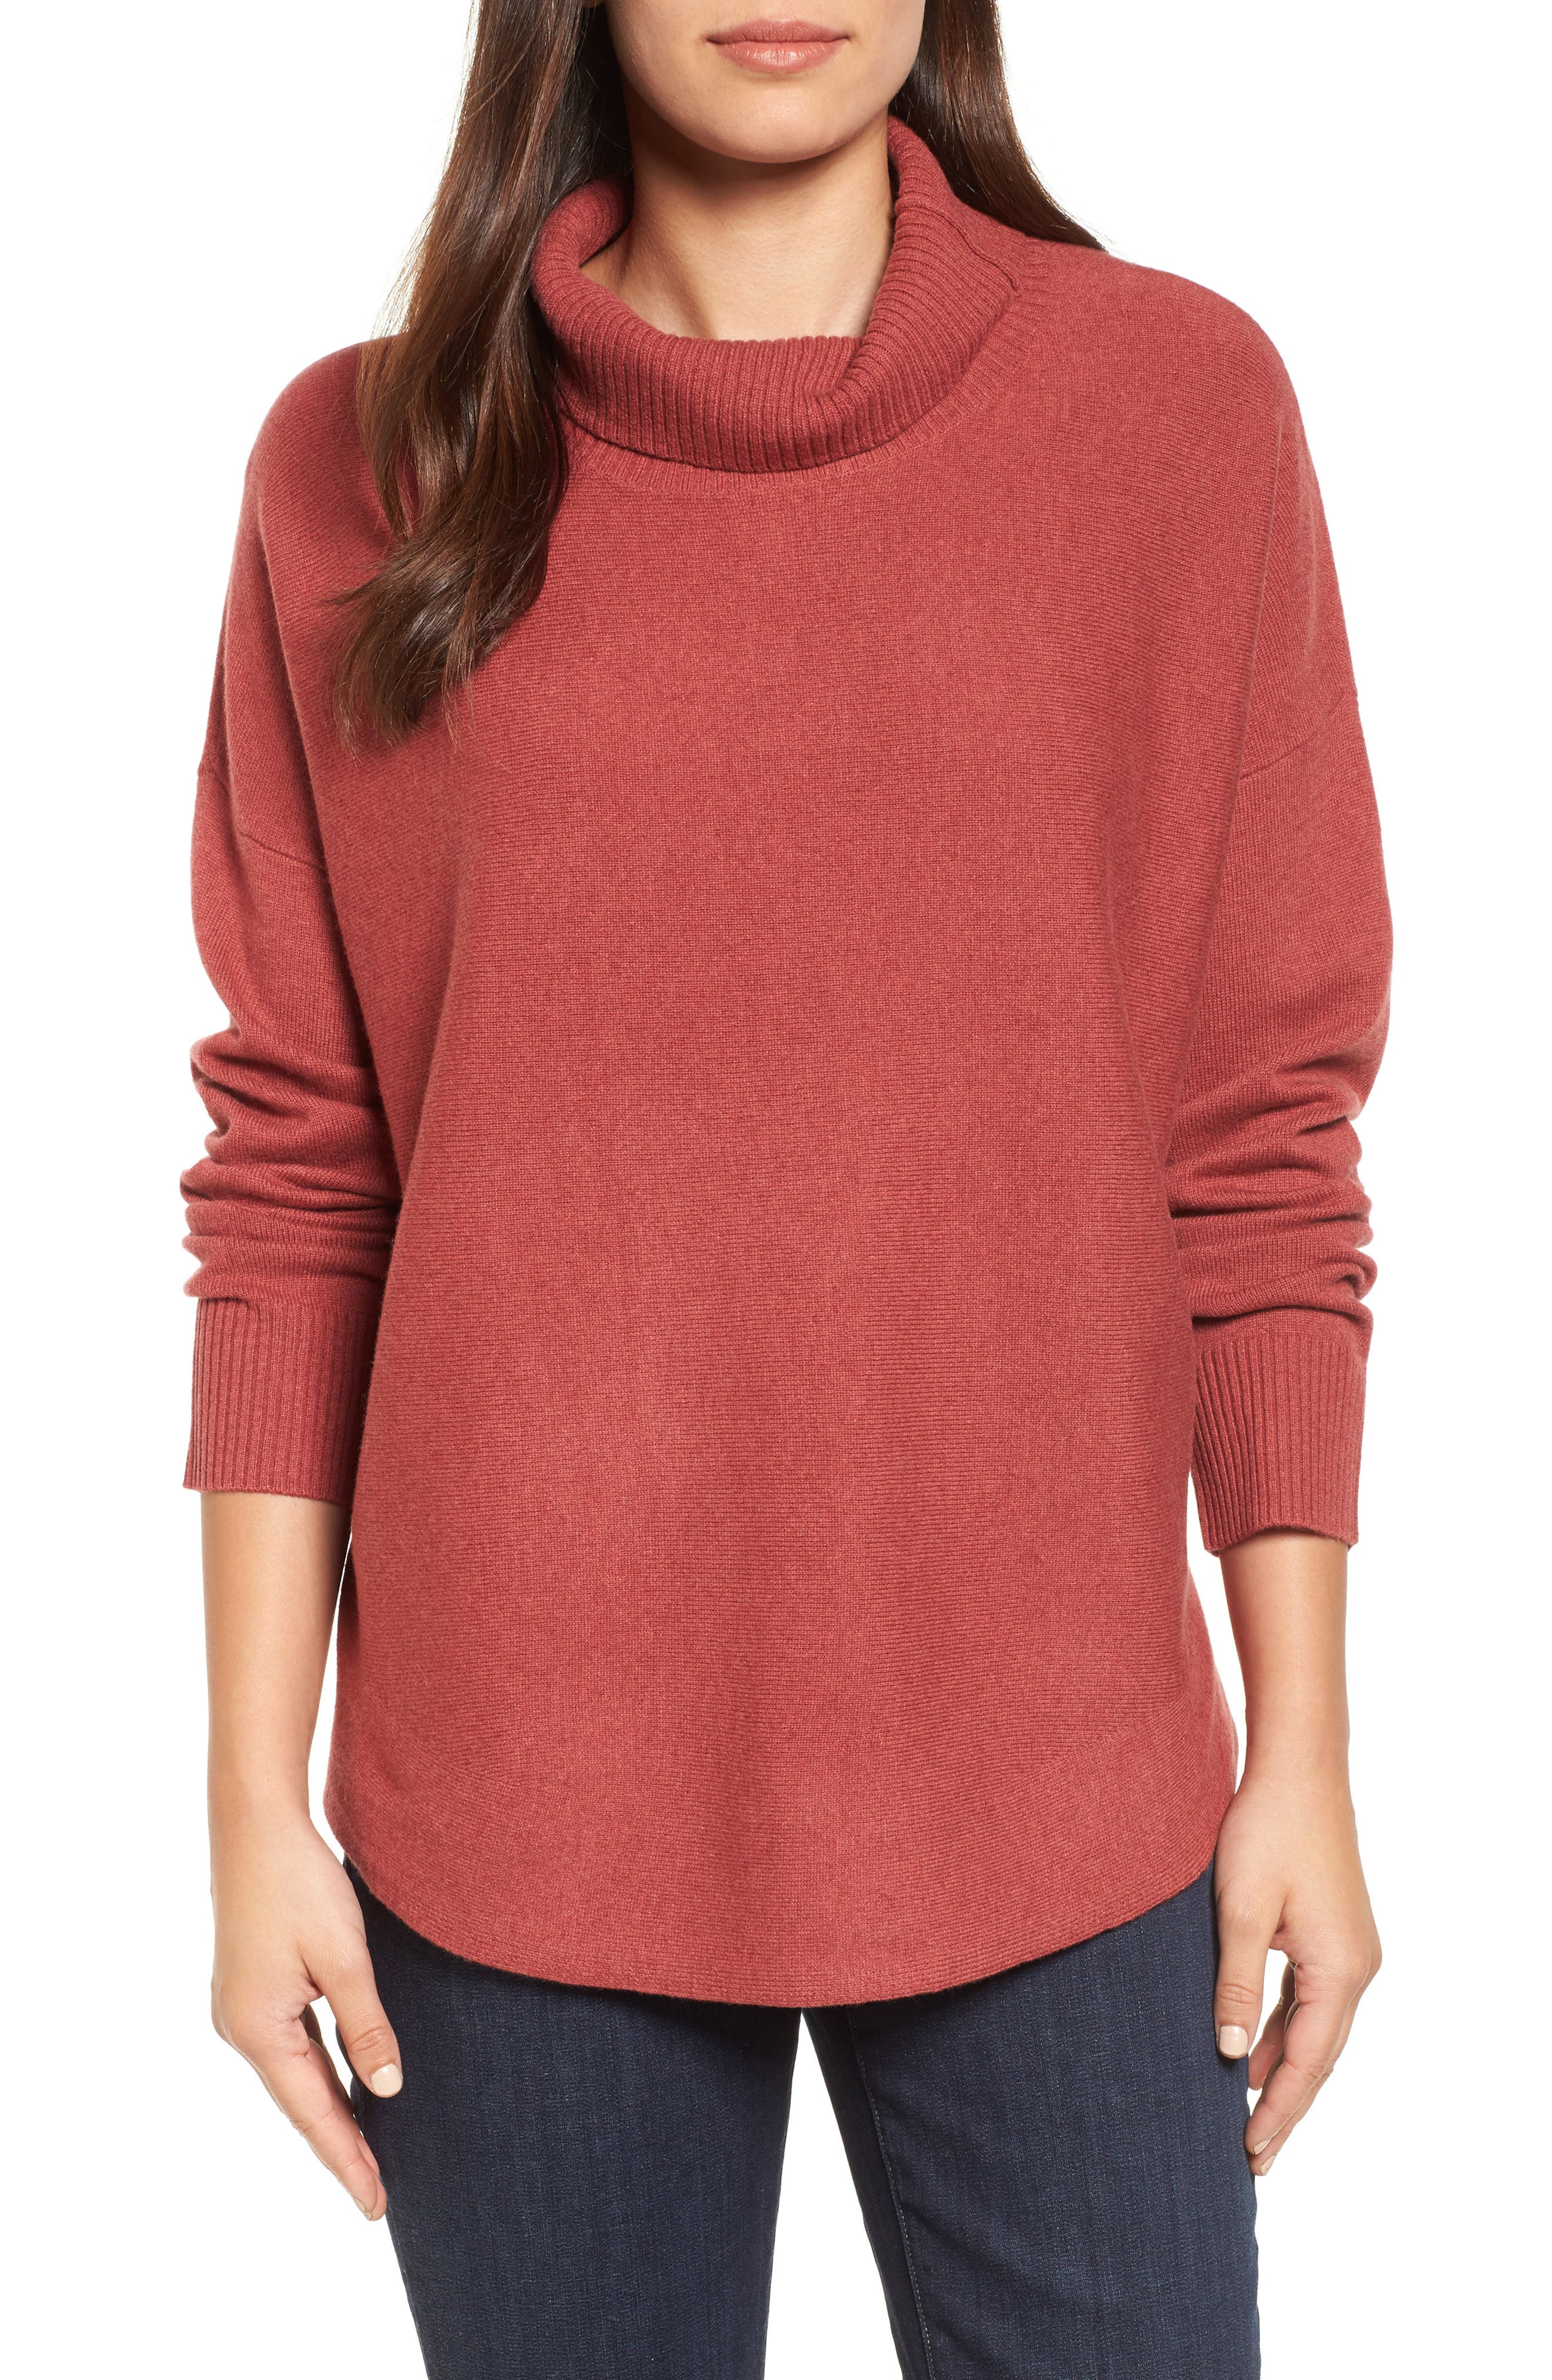 Red Pink Sweater Baggage Clothing